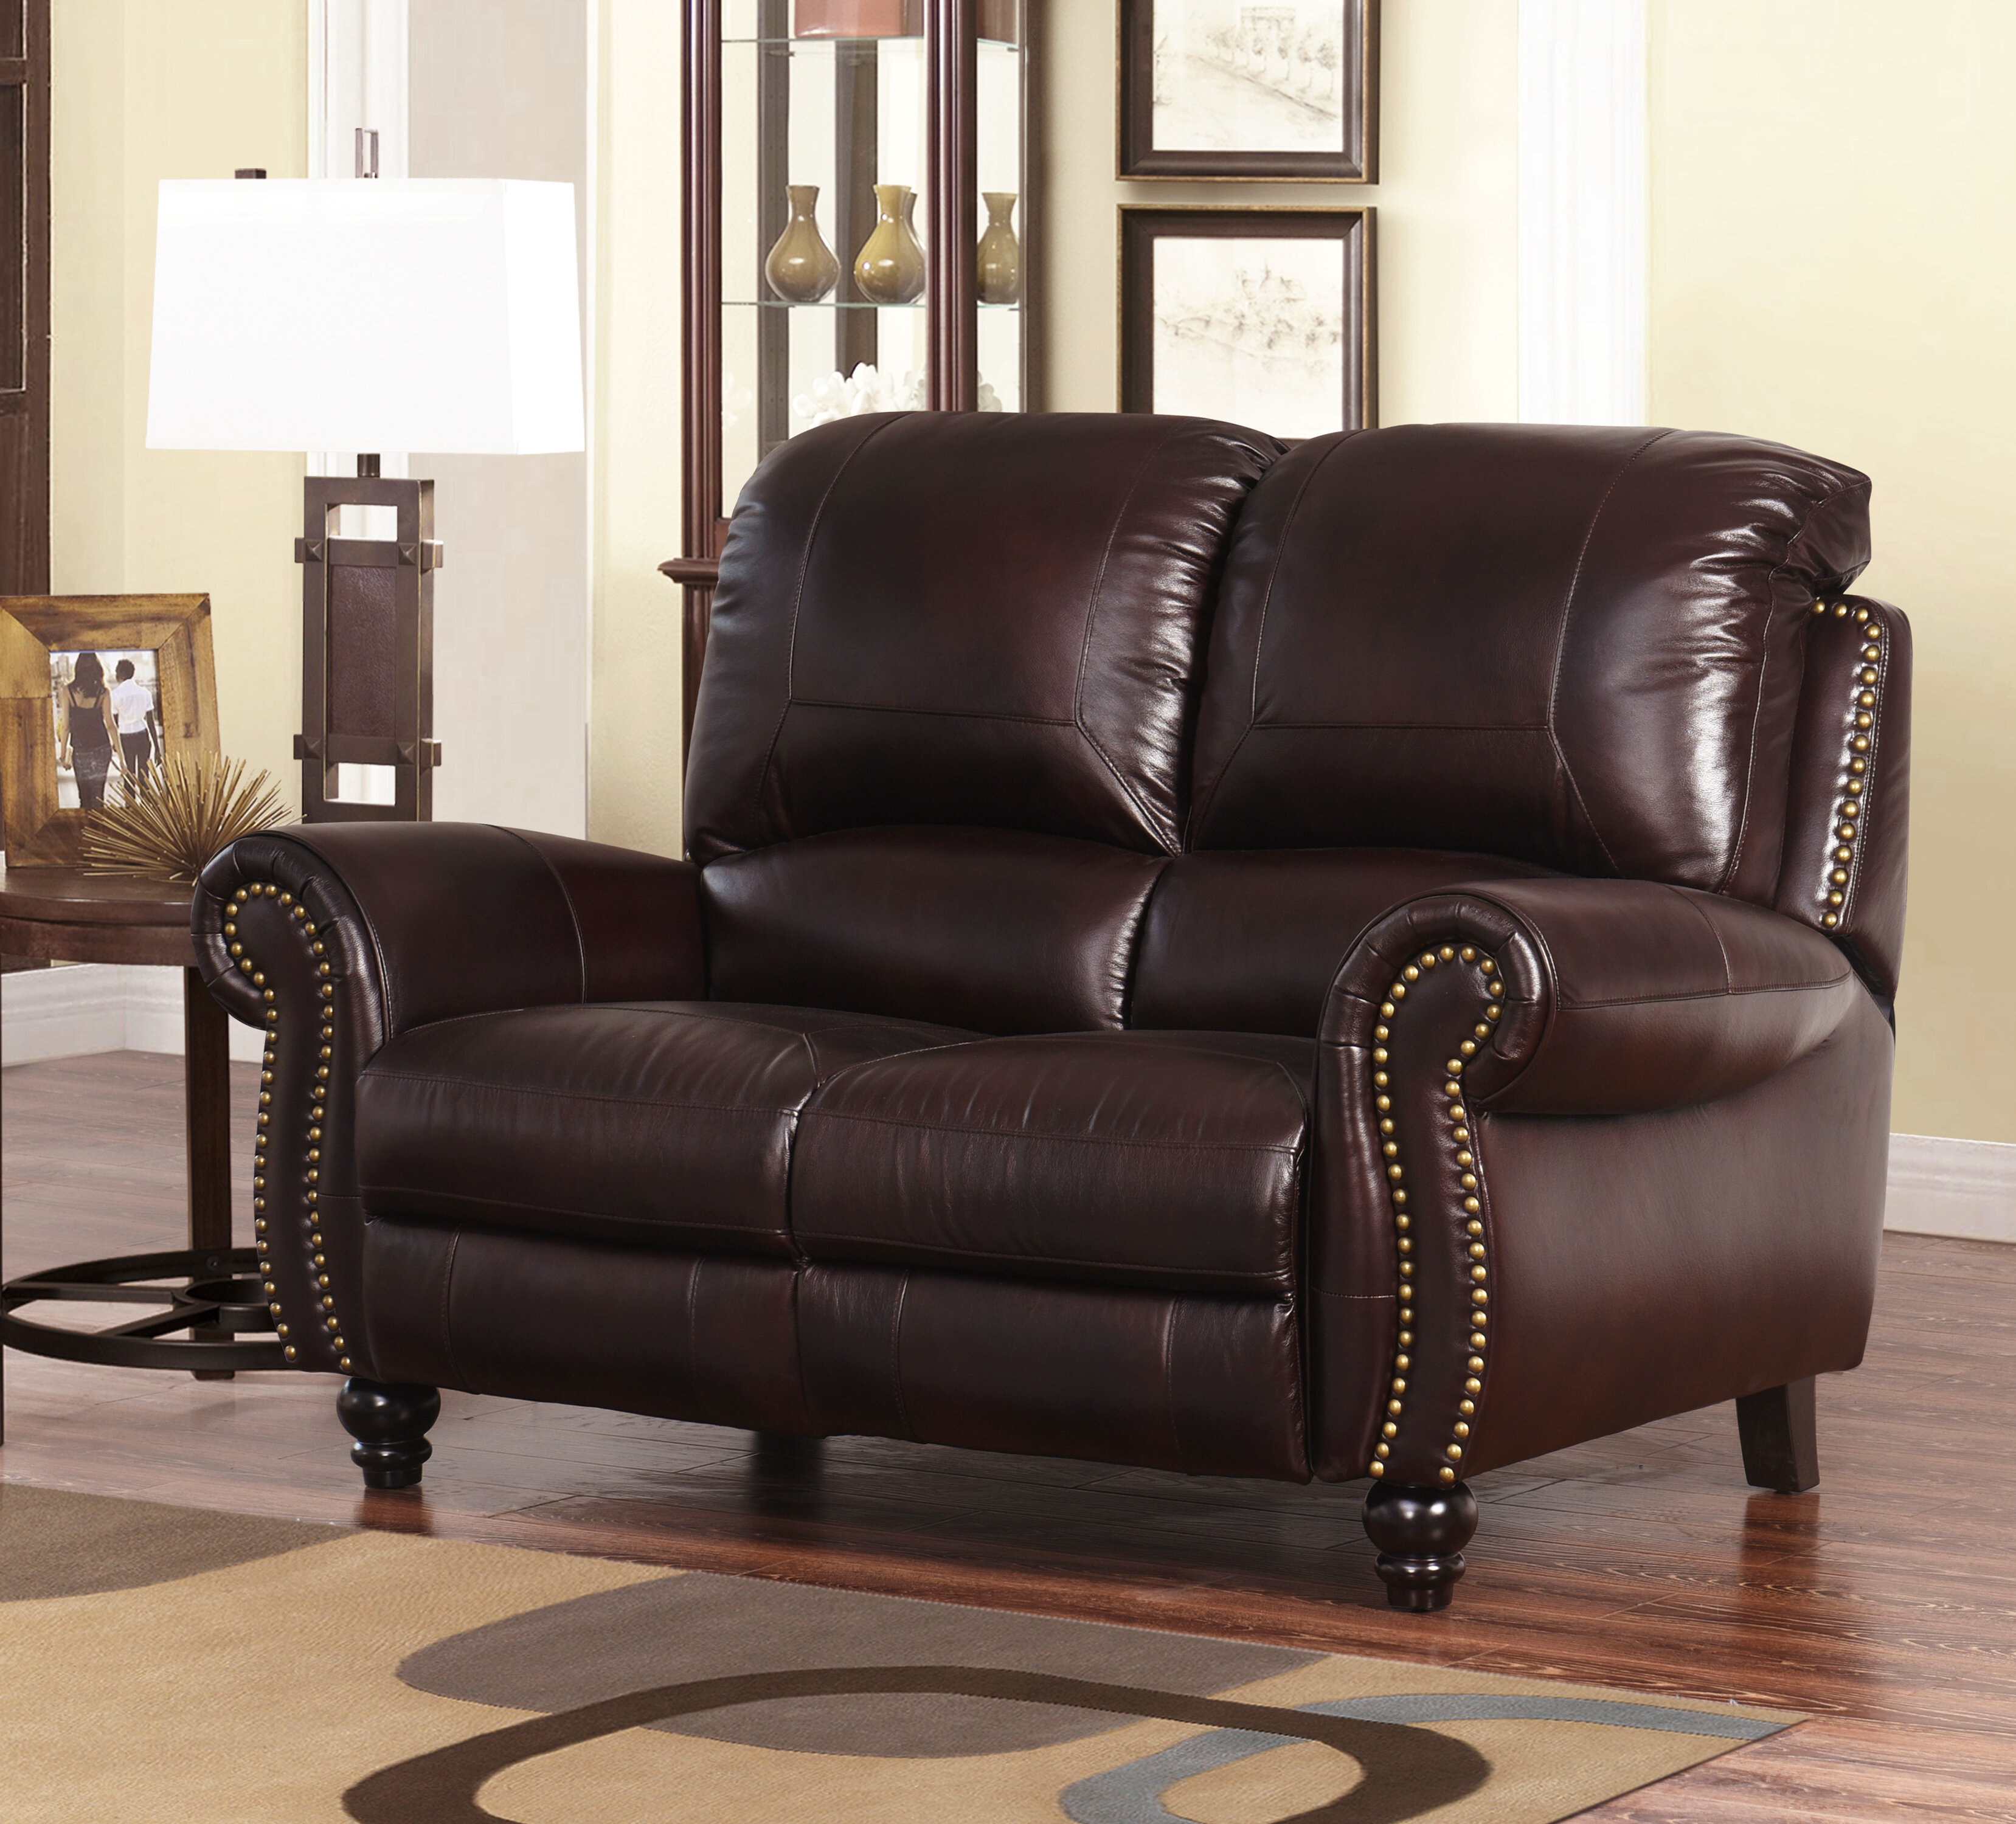 Awe Inspiring Williston Forge Tanguay Leather Reclining Loveseat Reviews Gamerscity Chair Design For Home Gamerscityorg